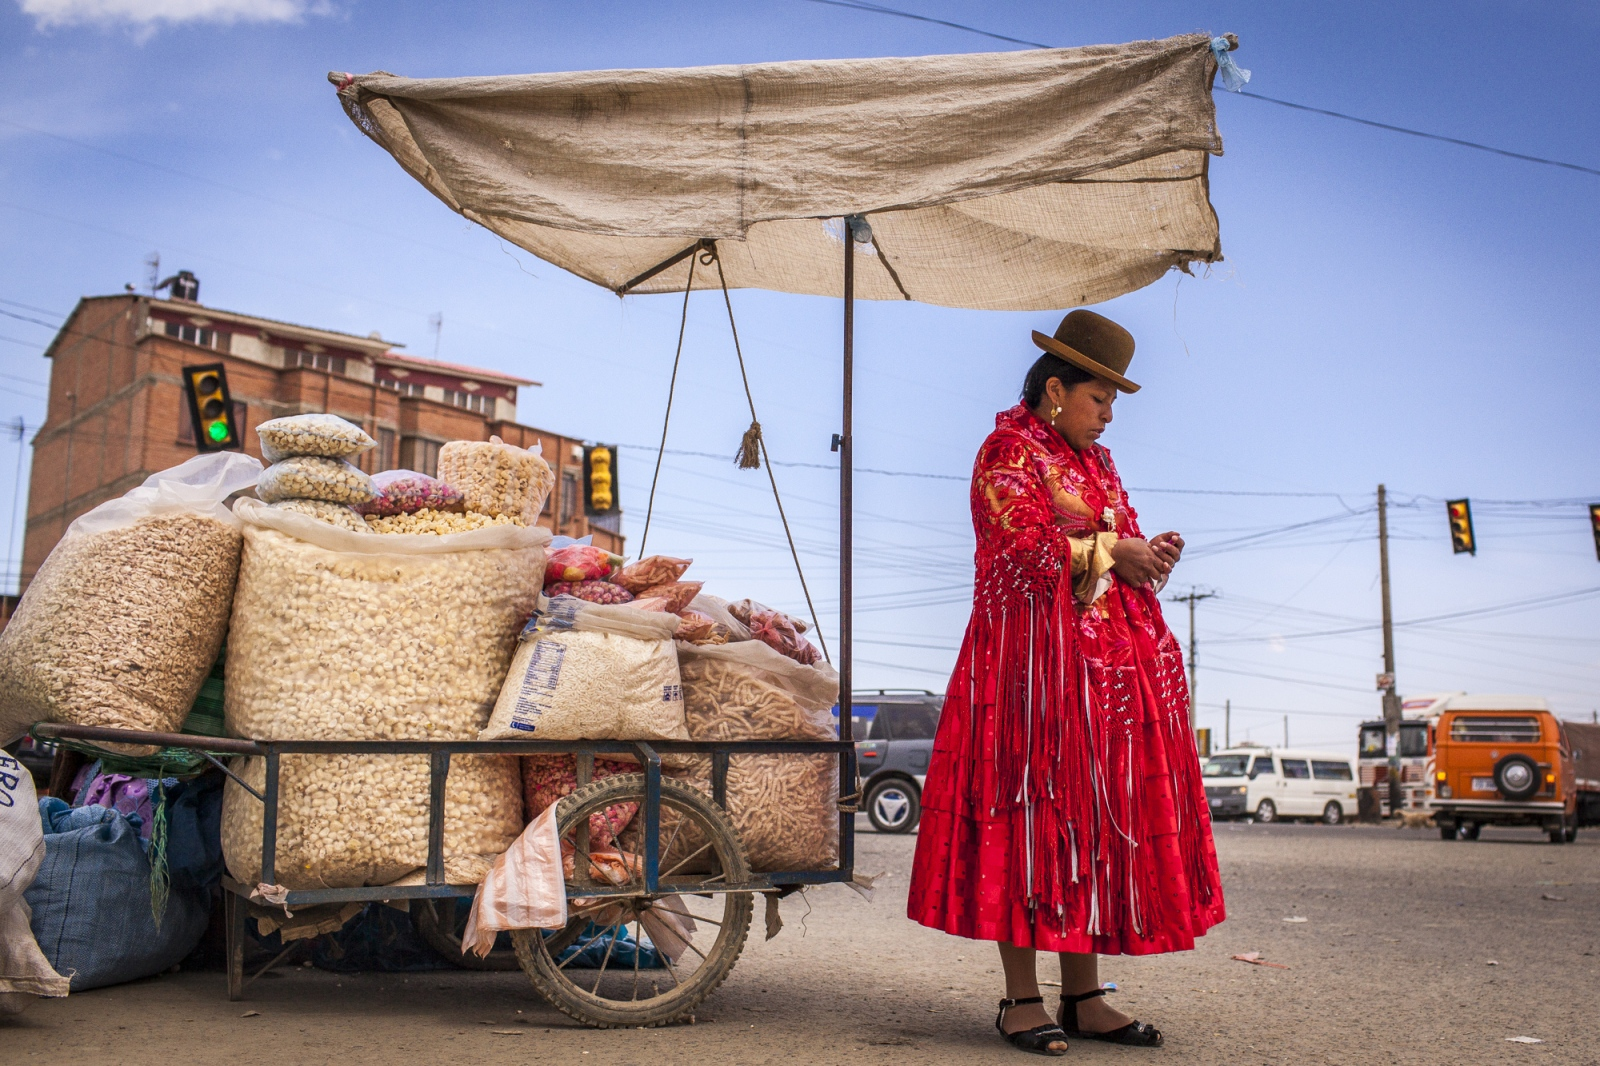 Reyna Torres, 22, waits at an intersection on the city of El Alto for the rest of the group so they can go together to a fight in Senkata. The wrestling cholitas fight every Sunday on the 12th October Complex in El Alto, but sometimes they do exhibition fights in other parts of La Paz and Bolivia to promote the sport.